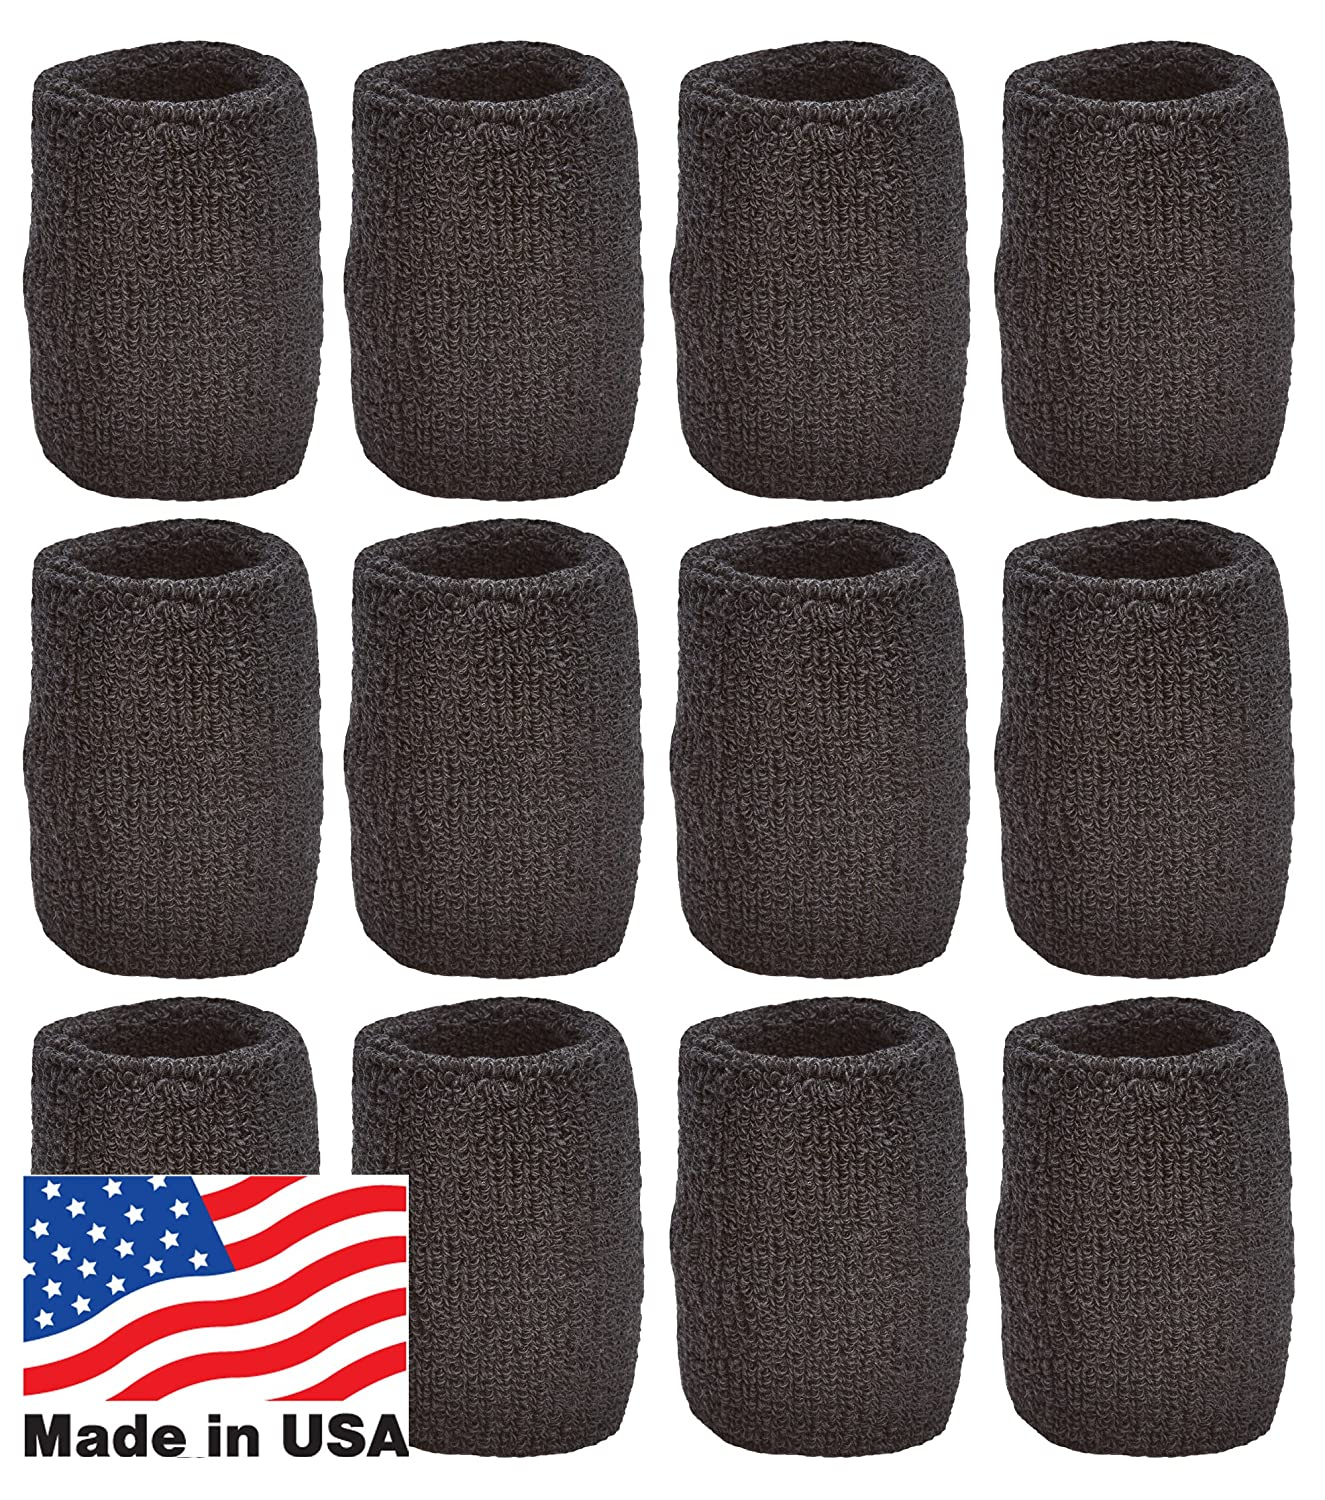 Unique Sports Wristbands Sweatbands Pack of 12 6 pair